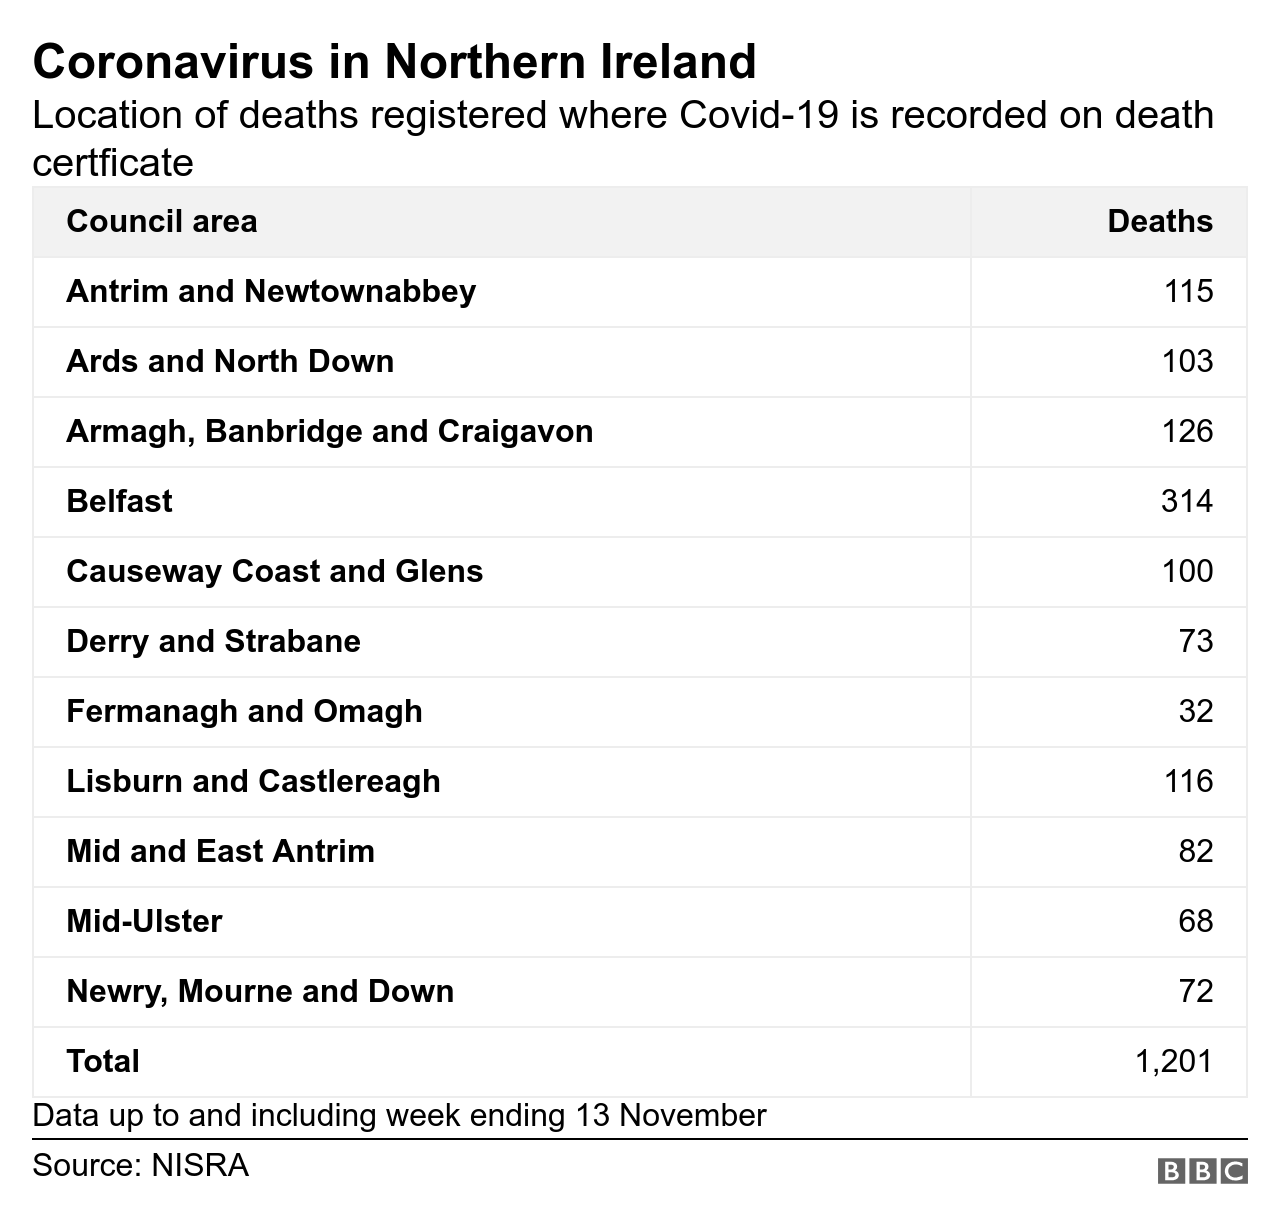 Covid-related deaths locations